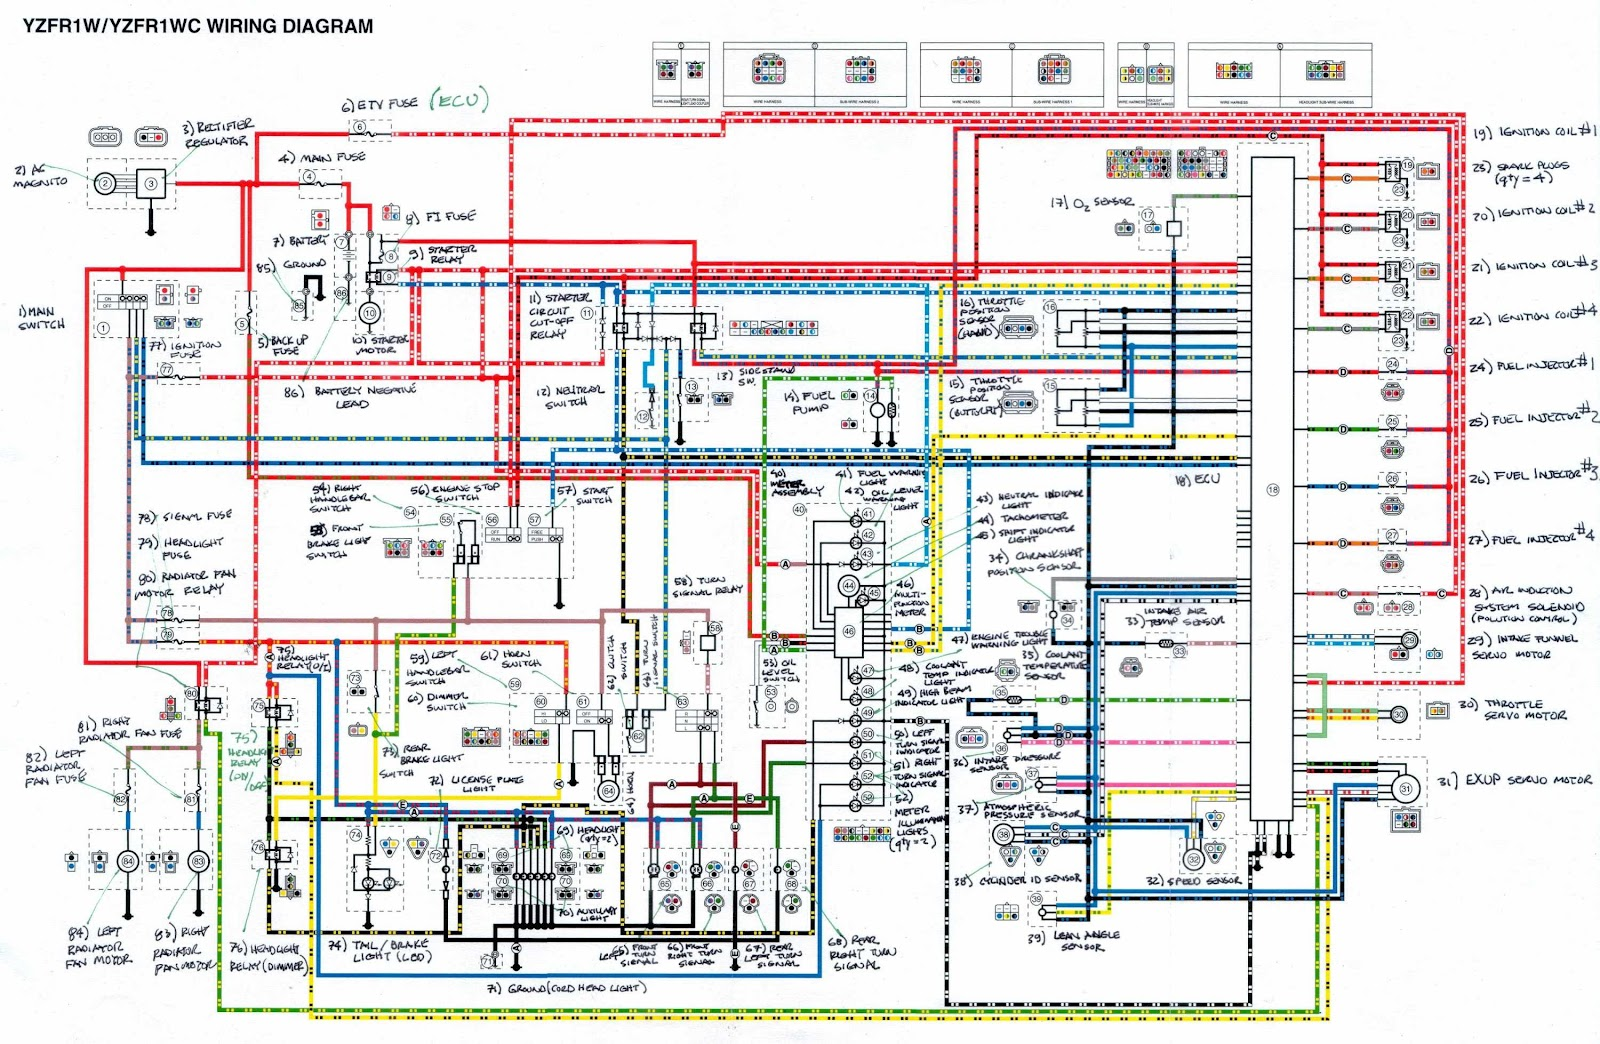 Yamaha+YZF R1+Motorcycle+Wiring+Diagram yamaha blaster wiring diagram the wiring diagram readingrat net ttr 250 wiring diagram at crackthecode.co